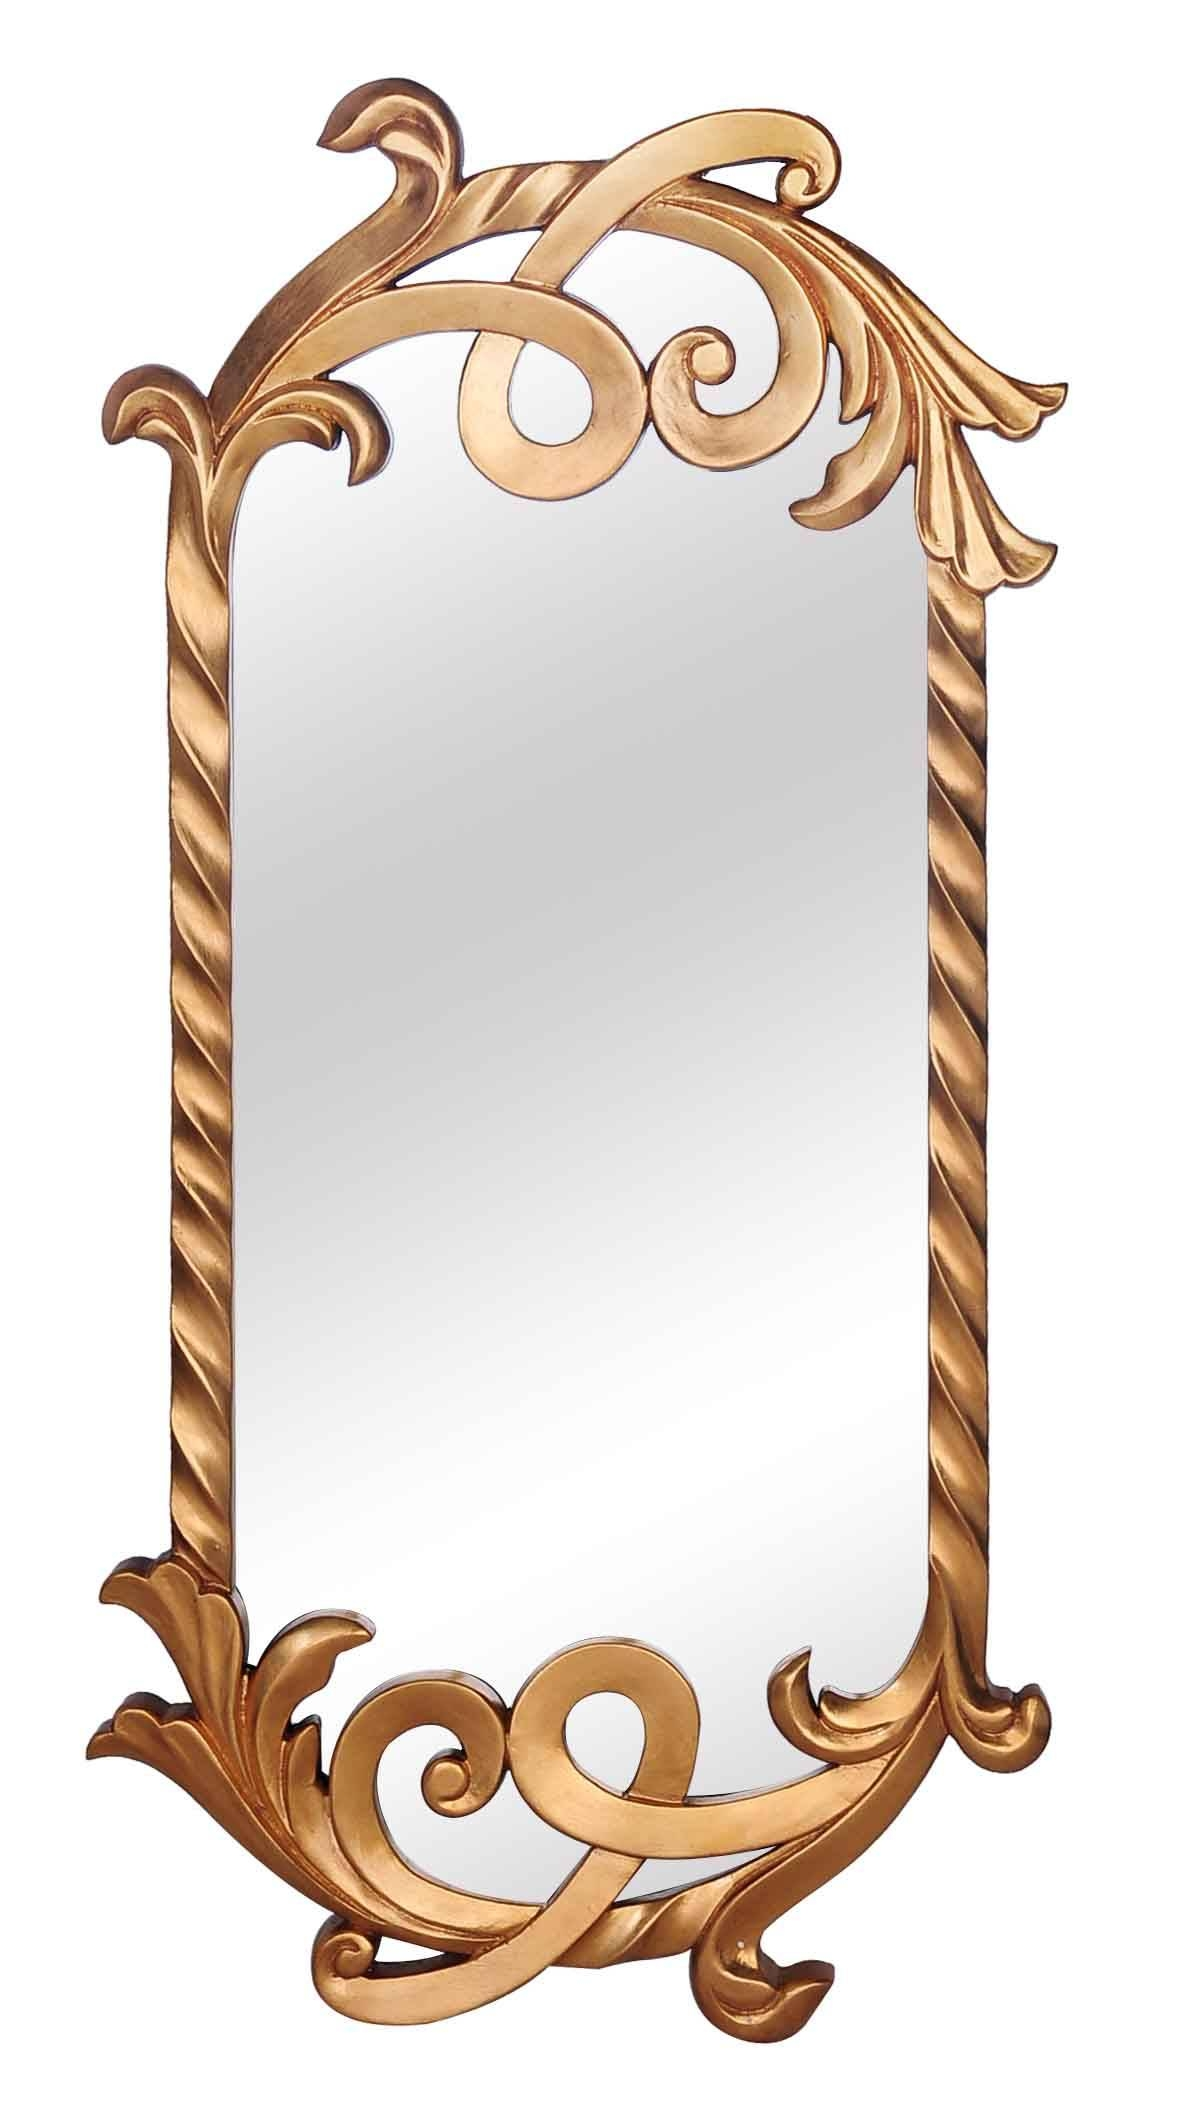 Ornate Mirror Frame - Minimalistic Design intended for Ornate Mirrors (Image 18 of 25)